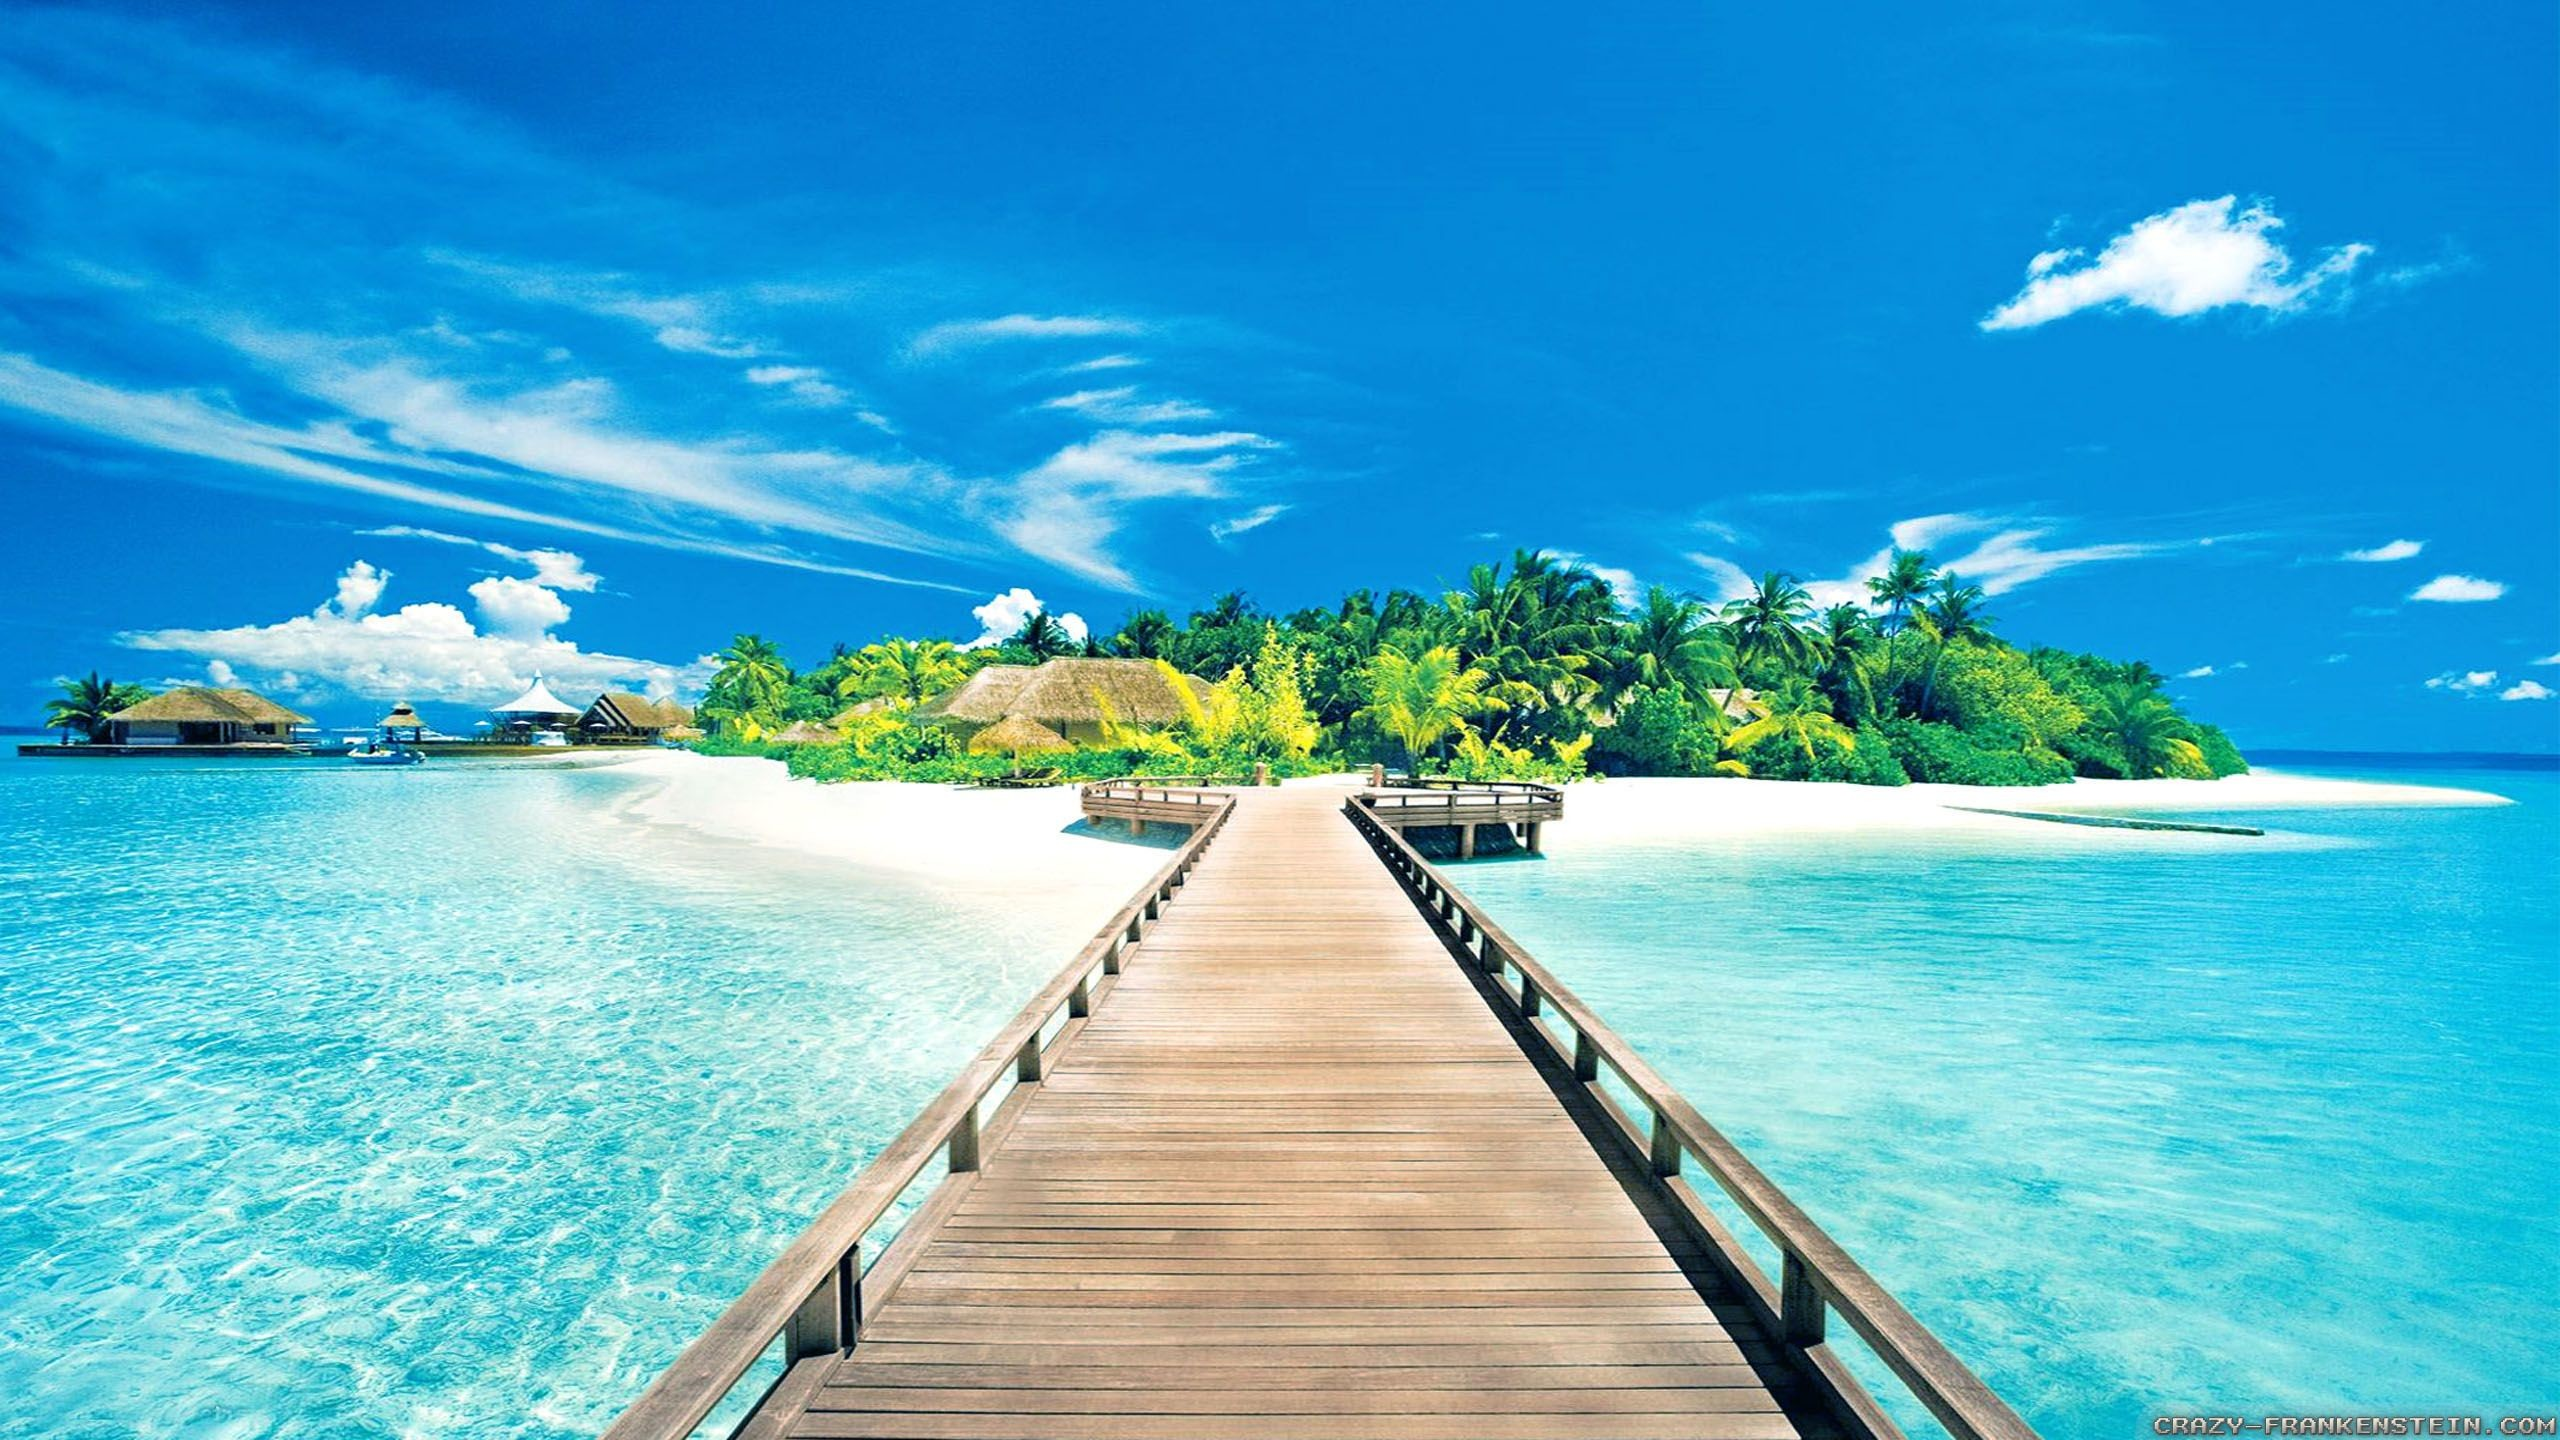 72 Beach Hd Wallpapers on WallpaperPlay 2560x1440